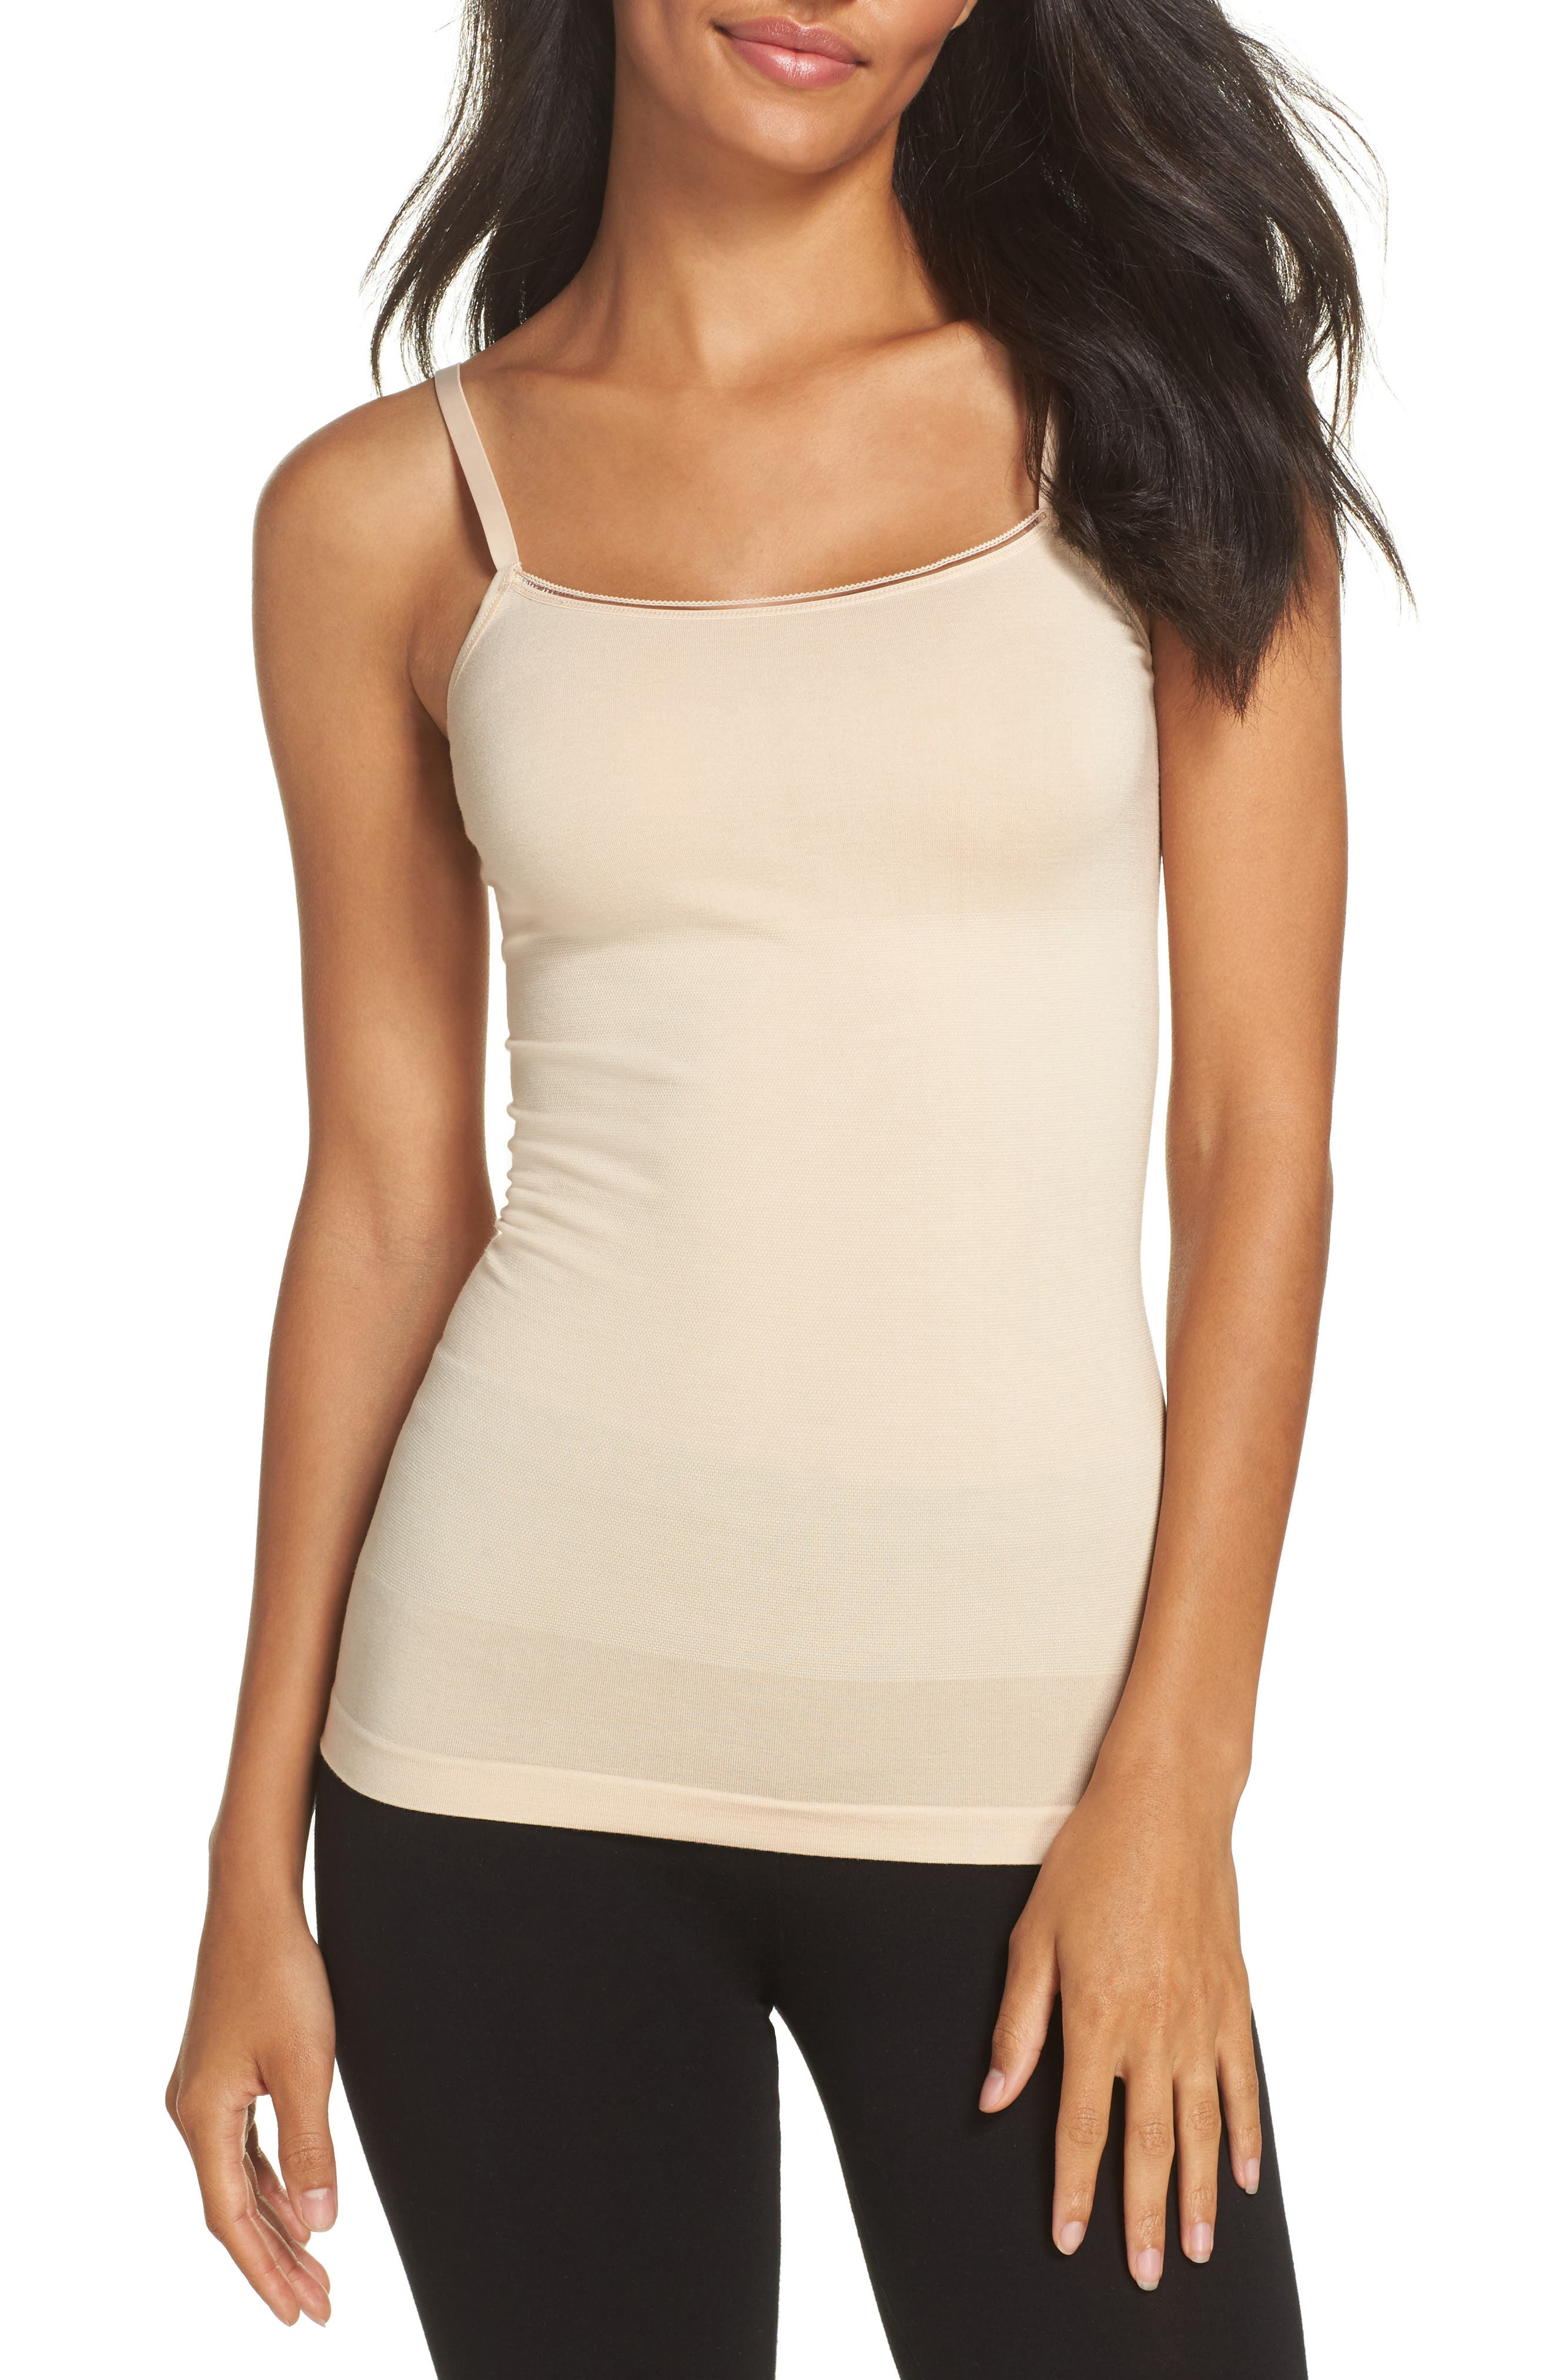 Yummie Seamlessly Shaped Convertible Camisole (Any 2 for $58)